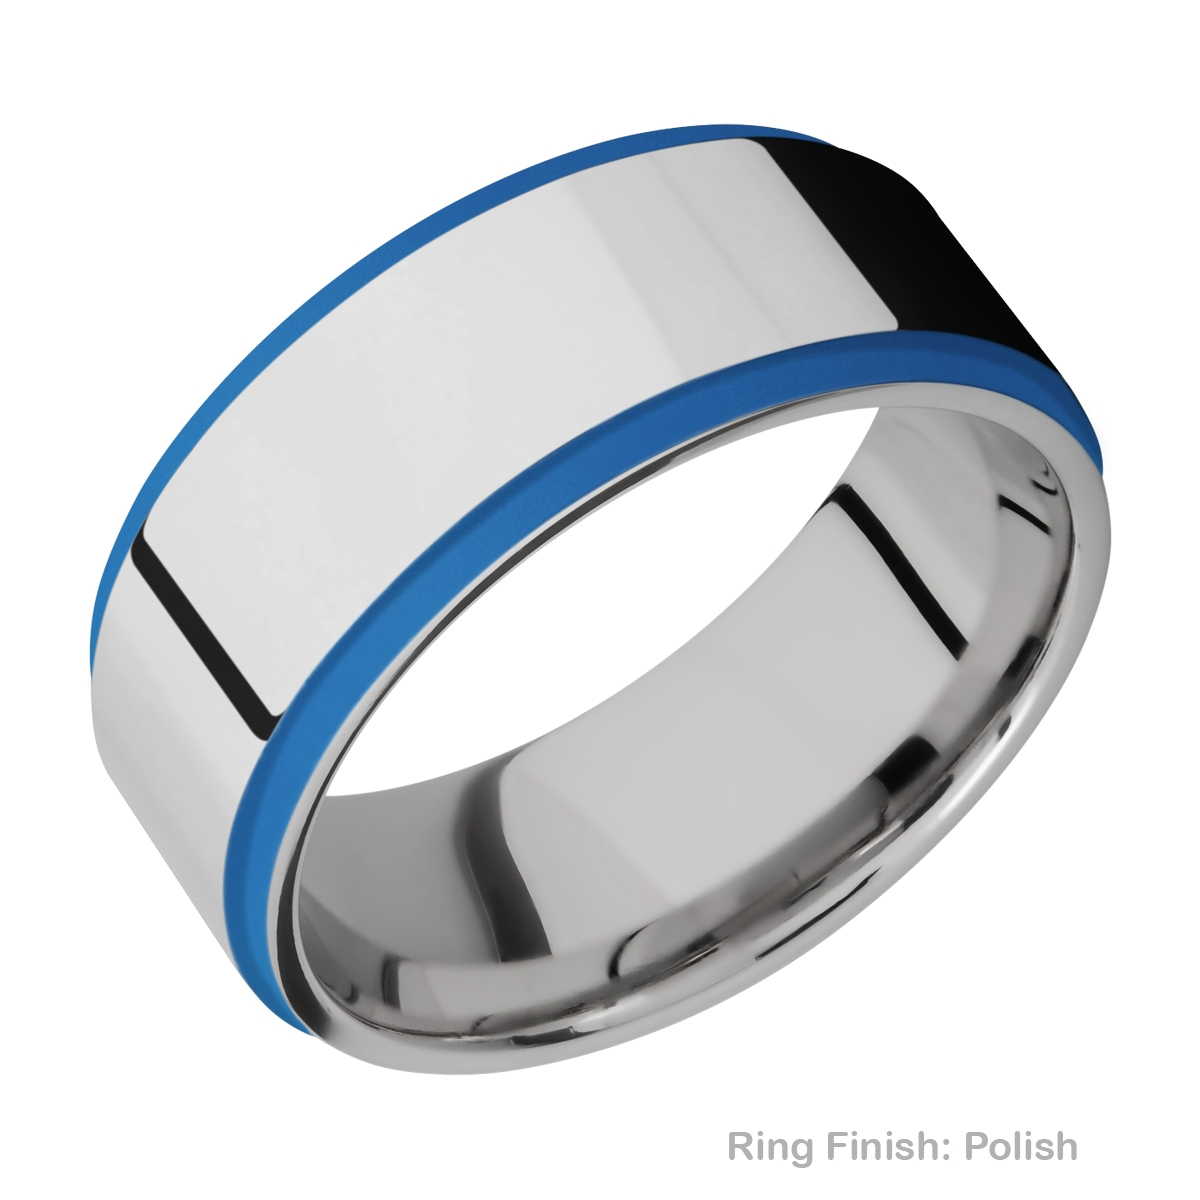 Lashbrook CC10FGE21EDGE/A/CERAKOTE Cobalt Chrome Wedding Ring or Band Alternative View 4